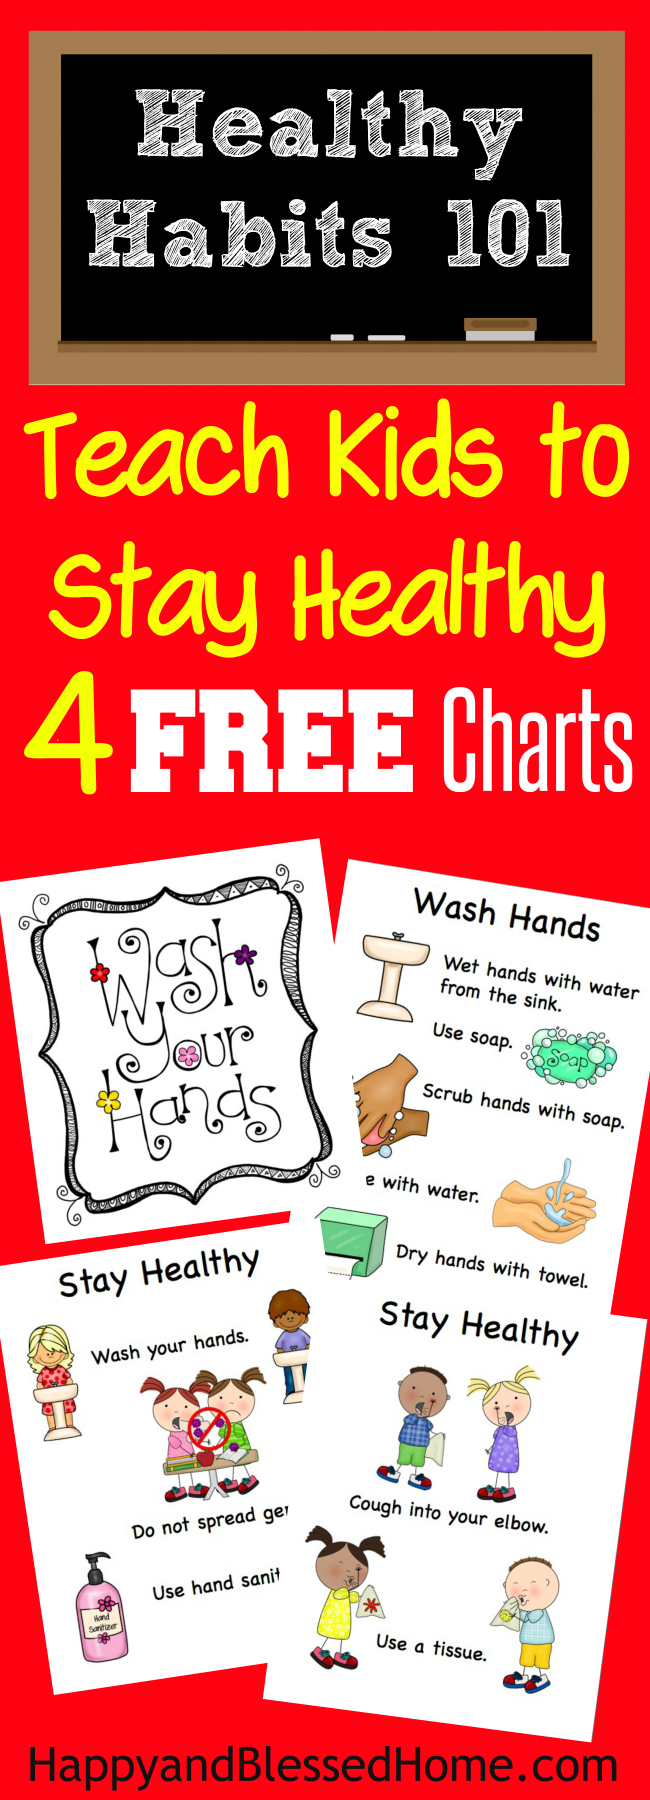 5 tips for keeping kids healthy and free stay healthy printables teach kids to stay healthy with 4 free charts perfect for the classroom or bathroom on nvjuhfo Image collections